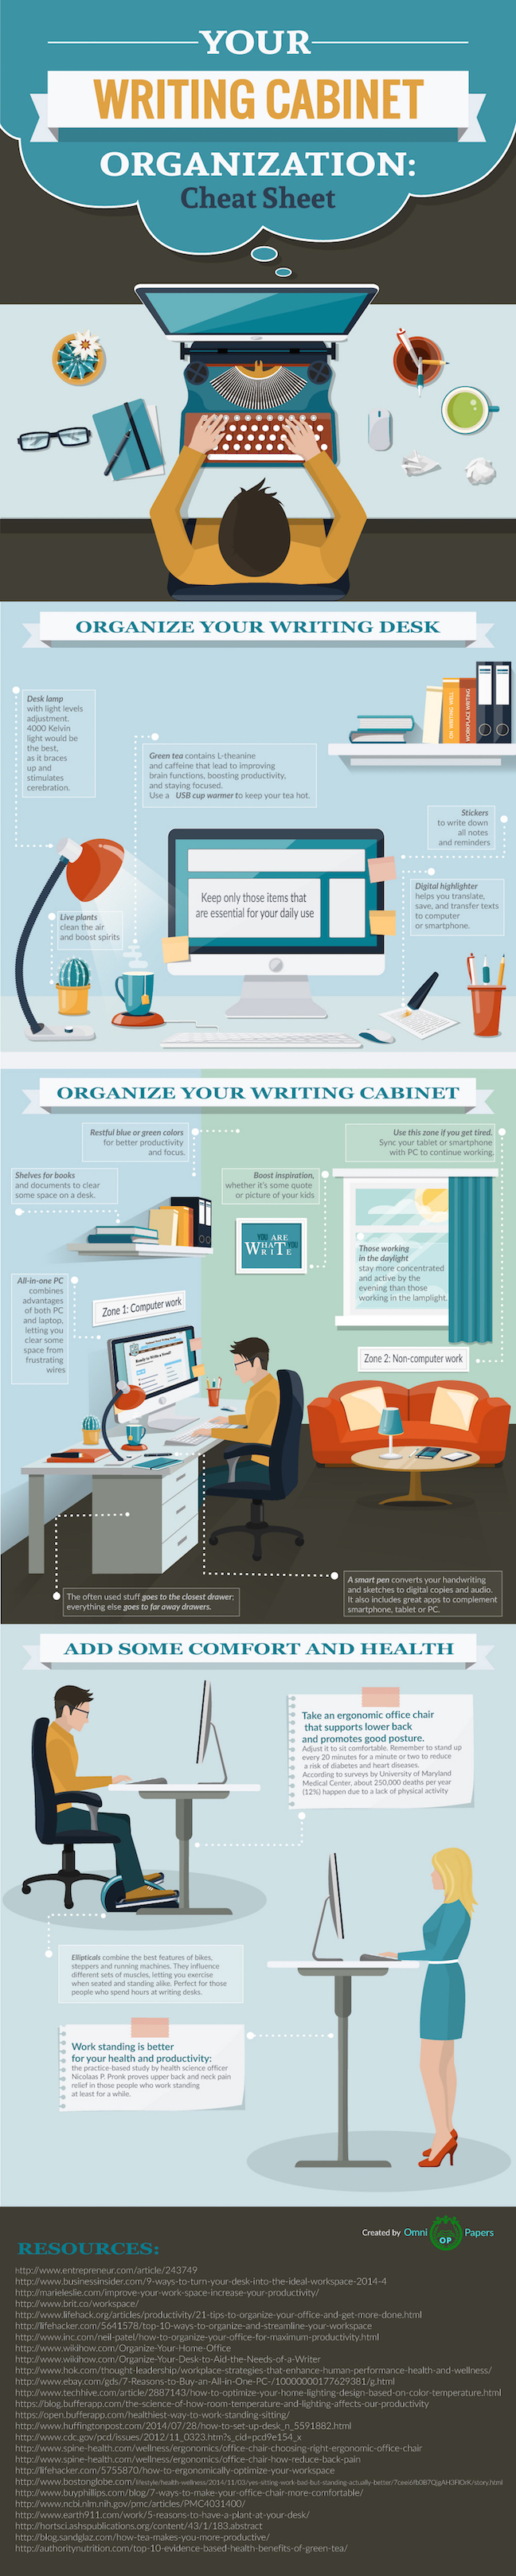 [Your Writing Cabinet]